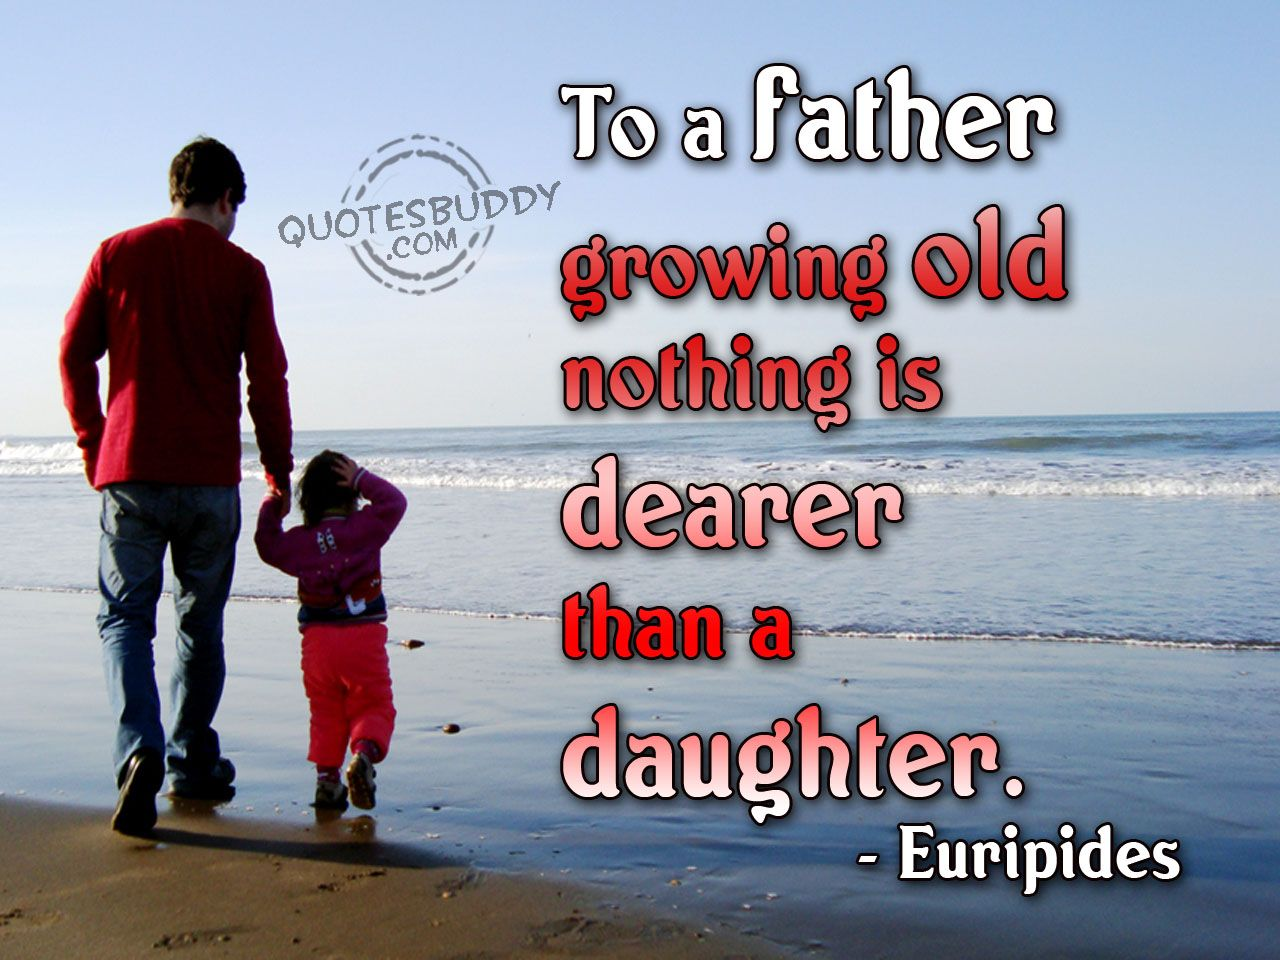 To a father growing old nothing is dearer than a daughter father quote Collection Inspiring Quotes Sayings